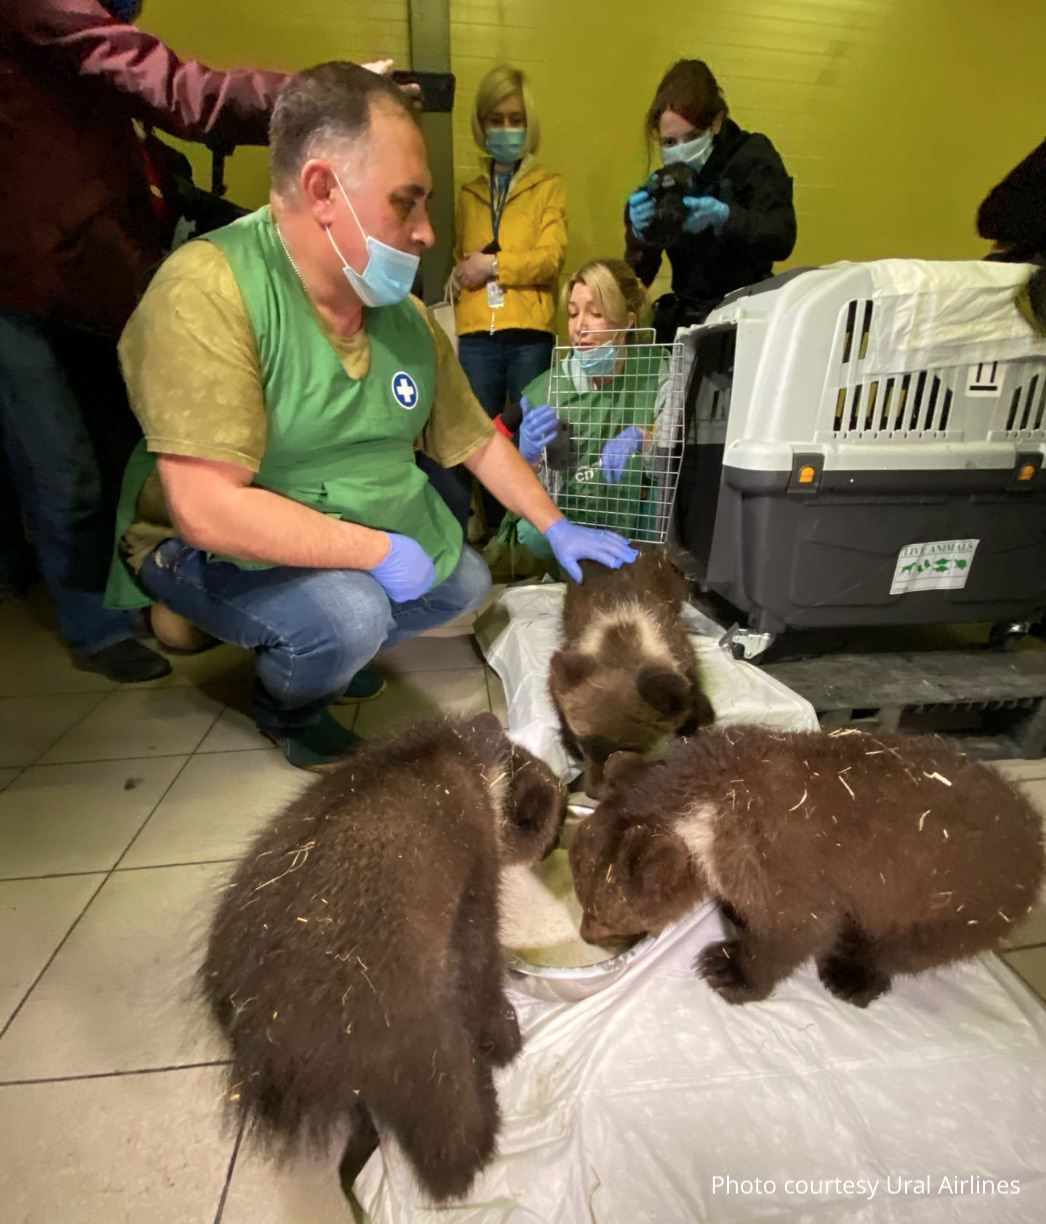 3 brown bears transported by Ural Airlines